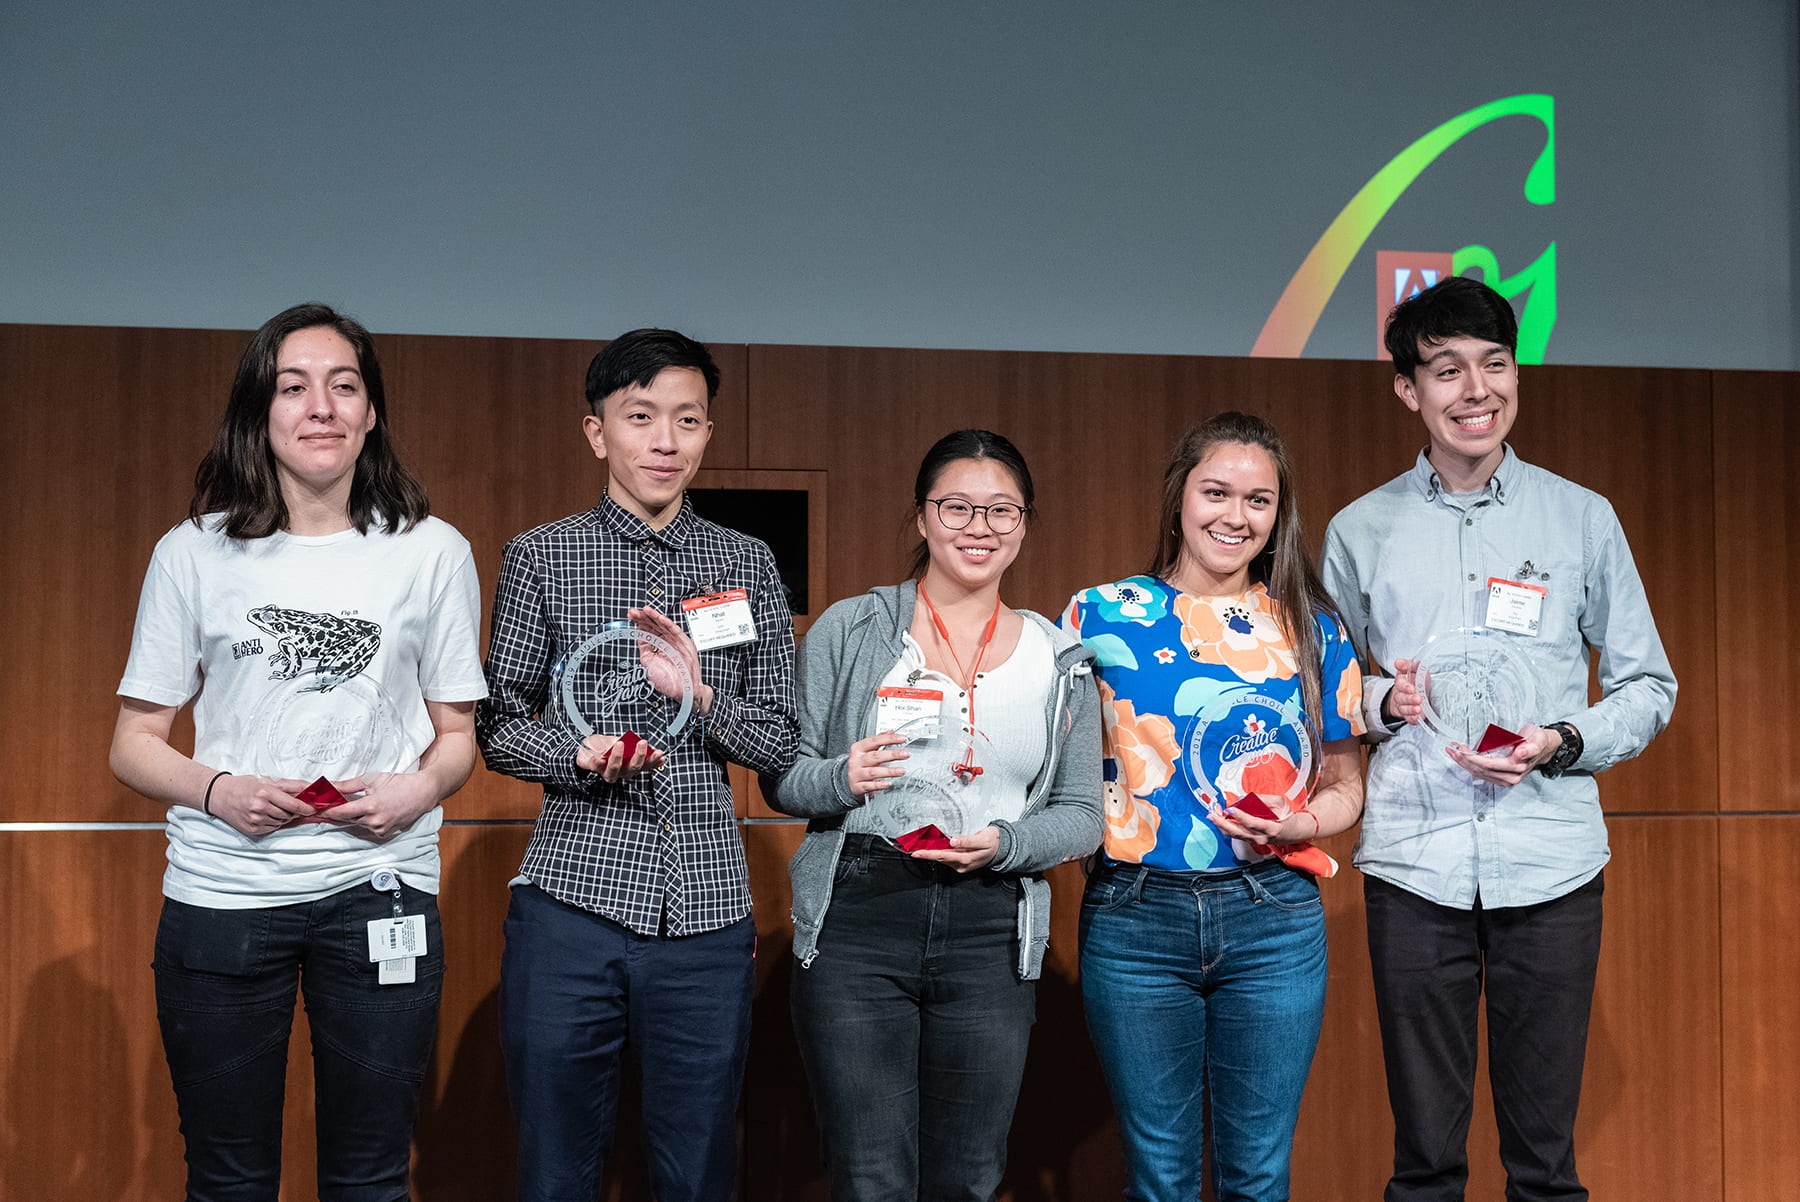 Team Detox received the Audience Choice Award at the Adobe Creative Jam on April 18, 2019.